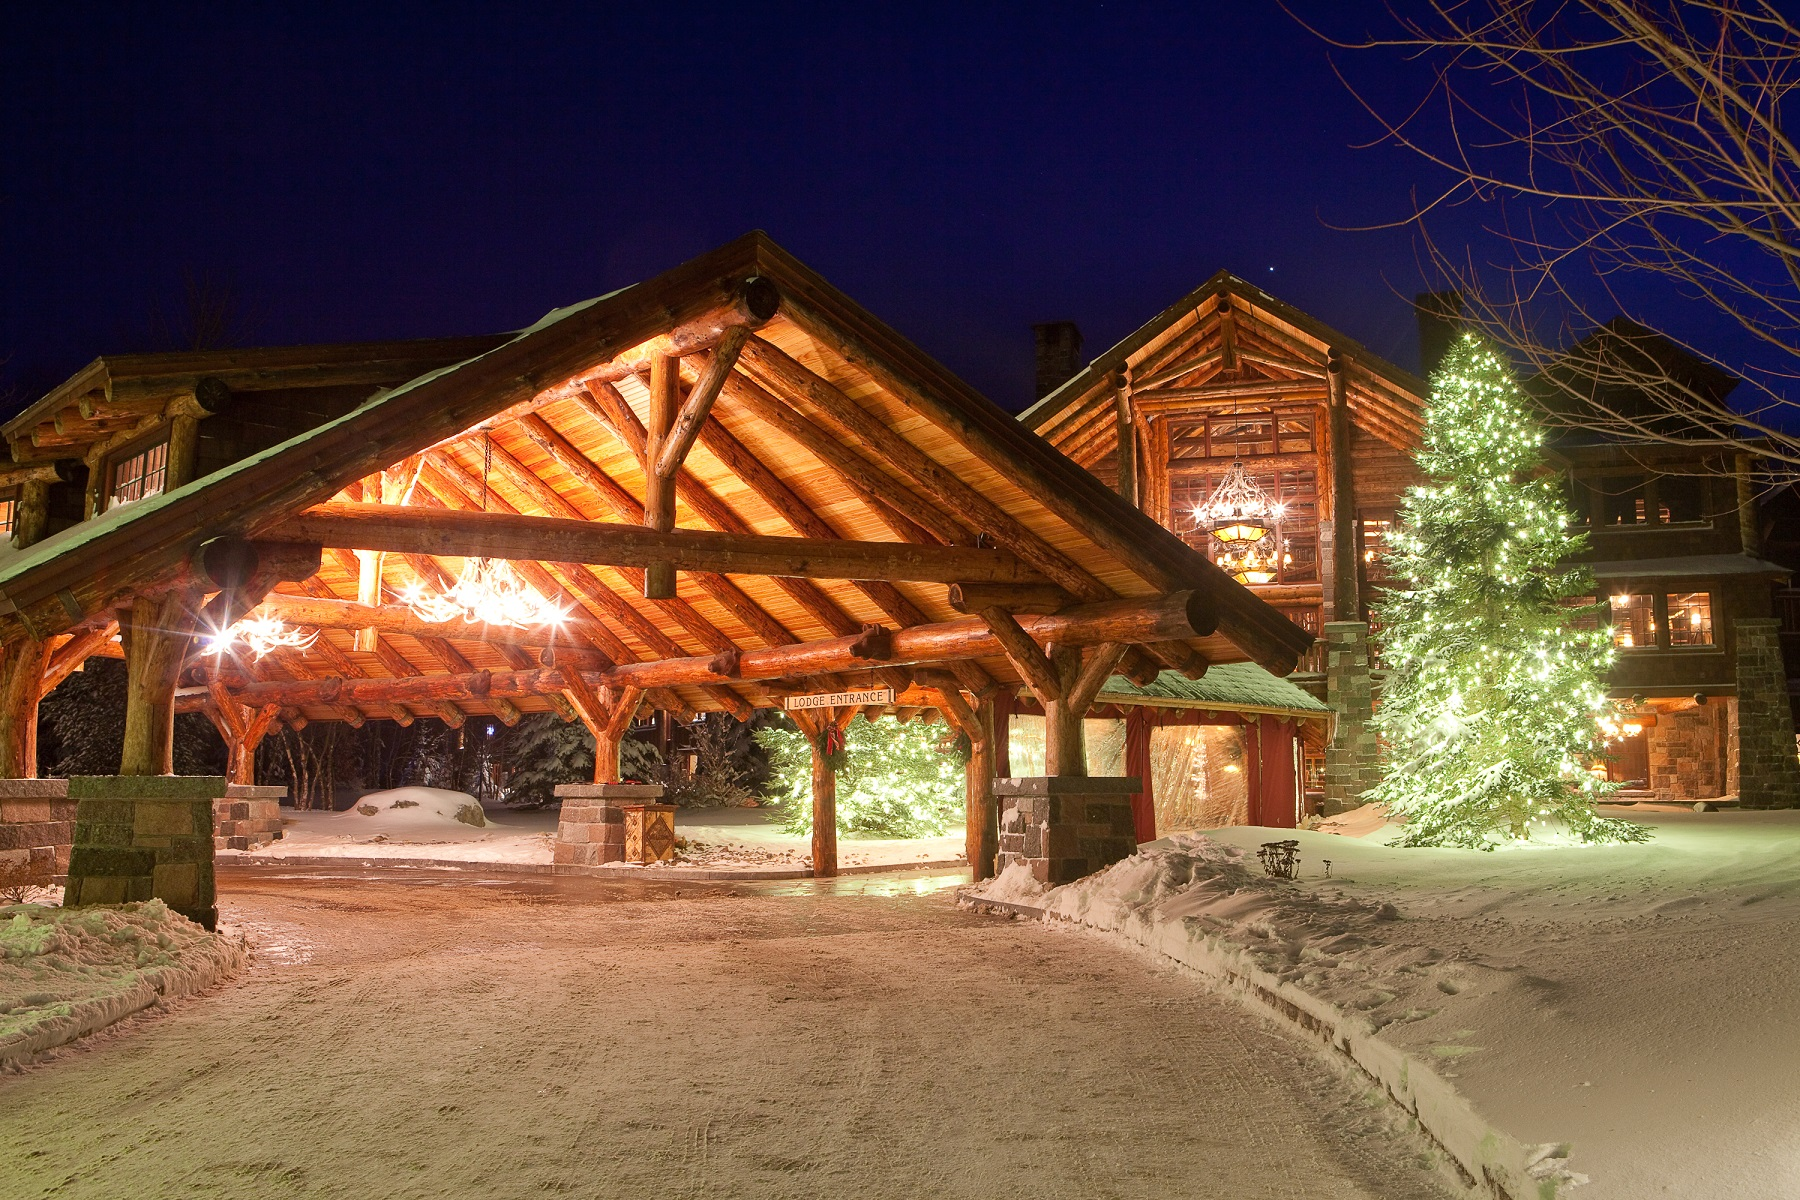 Fractional Ownership for Sale at 7 Whiteface Inn Lane Suite 317, Lake Placid, NY 12 7 Whiteface Inn Lane Suite 317 Lake Placid, New York 12946 United States